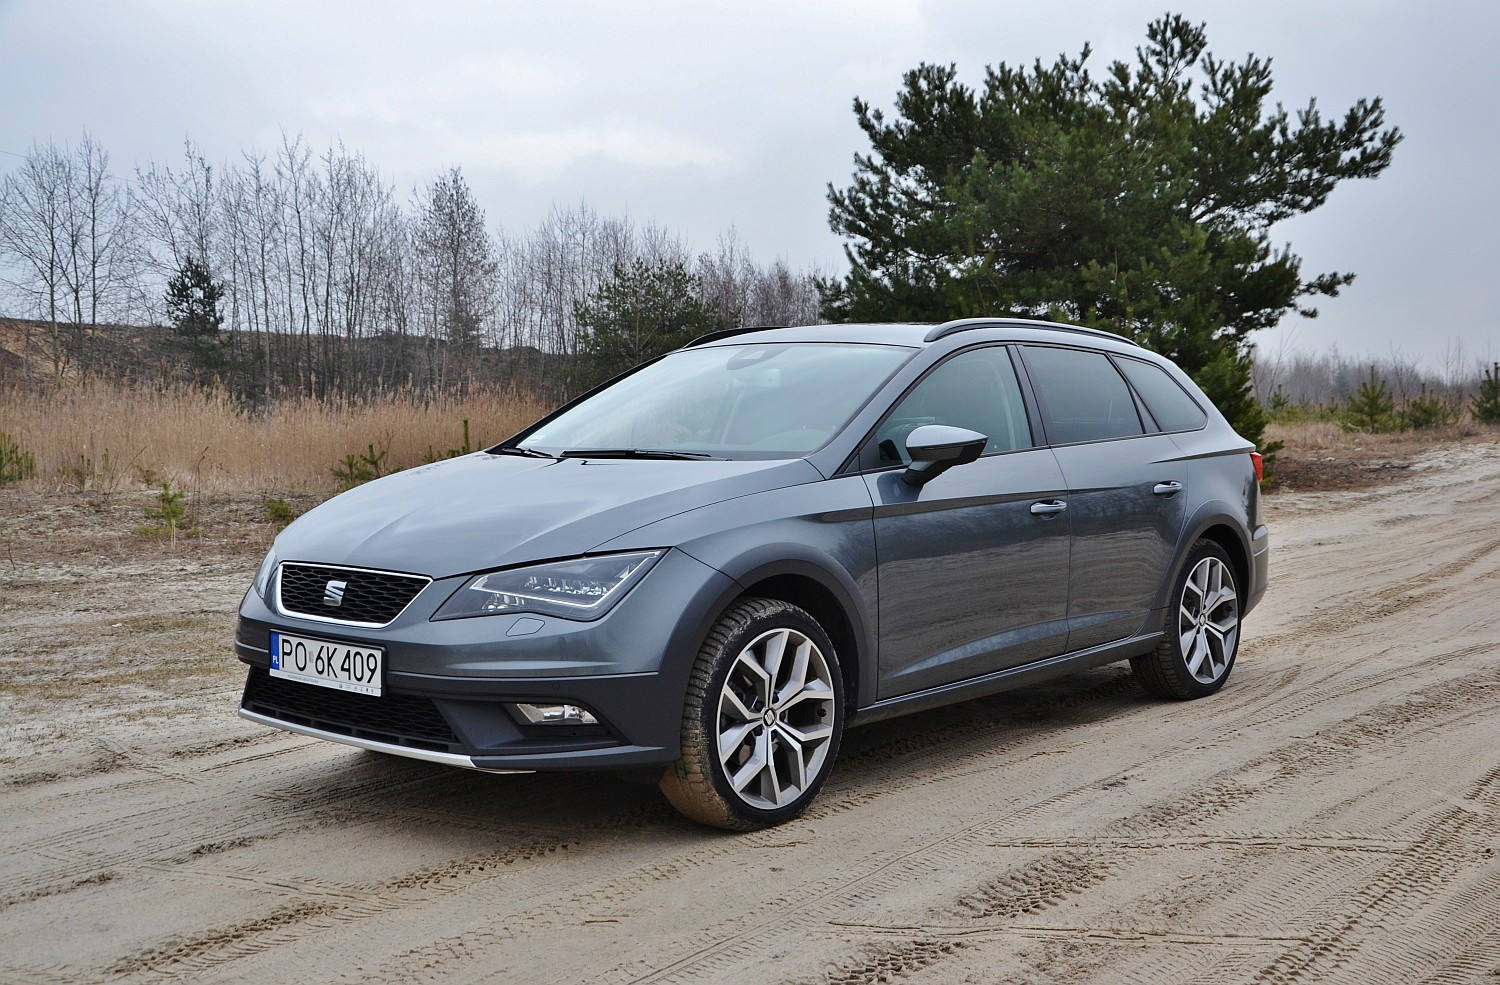 seat leon x perience 2 0 tdi 4drive ten najdzielniejszy namasce. Black Bedroom Furniture Sets. Home Design Ideas